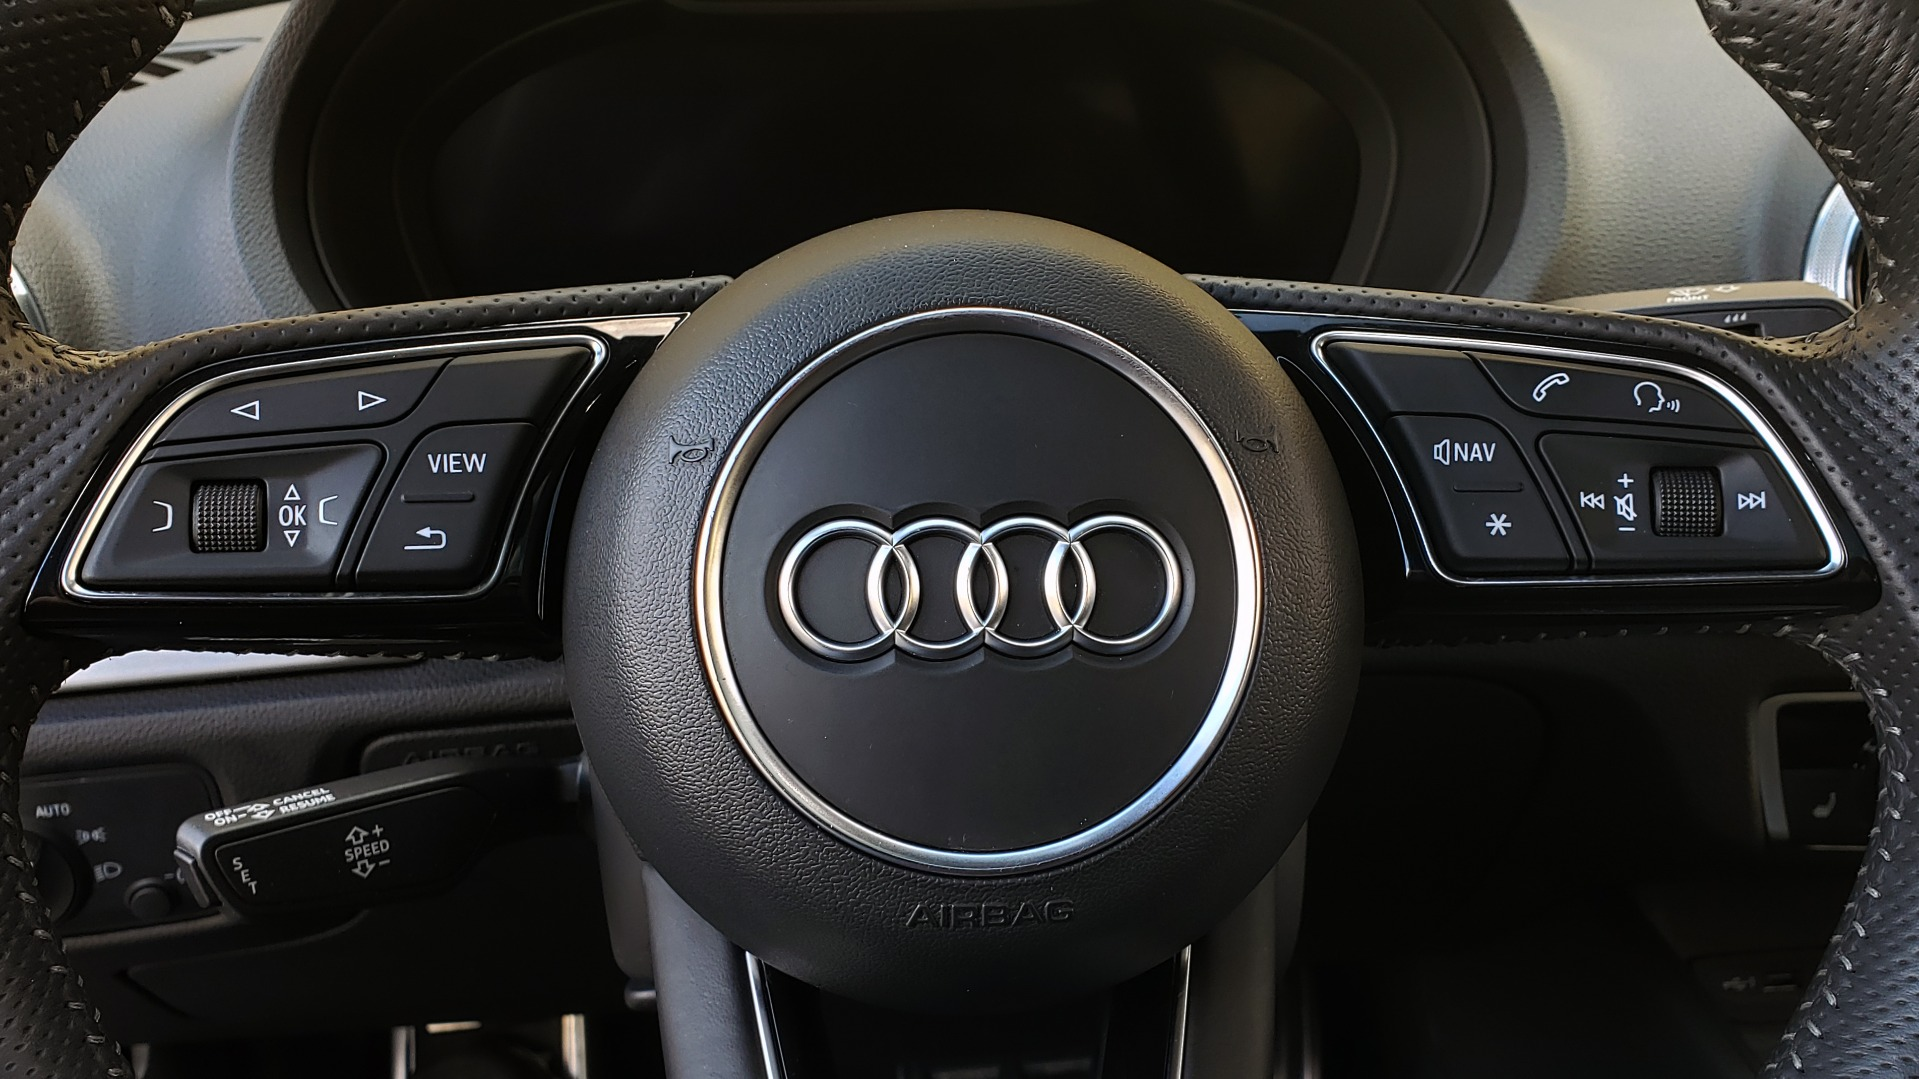 Used 2018 Audi S3 PREMIUM PLUS / TECH / NAV / BLACK OPTIC / S-SPORT / REARVIEW for sale $32,995 at Formula Imports in Charlotte NC 28227 39